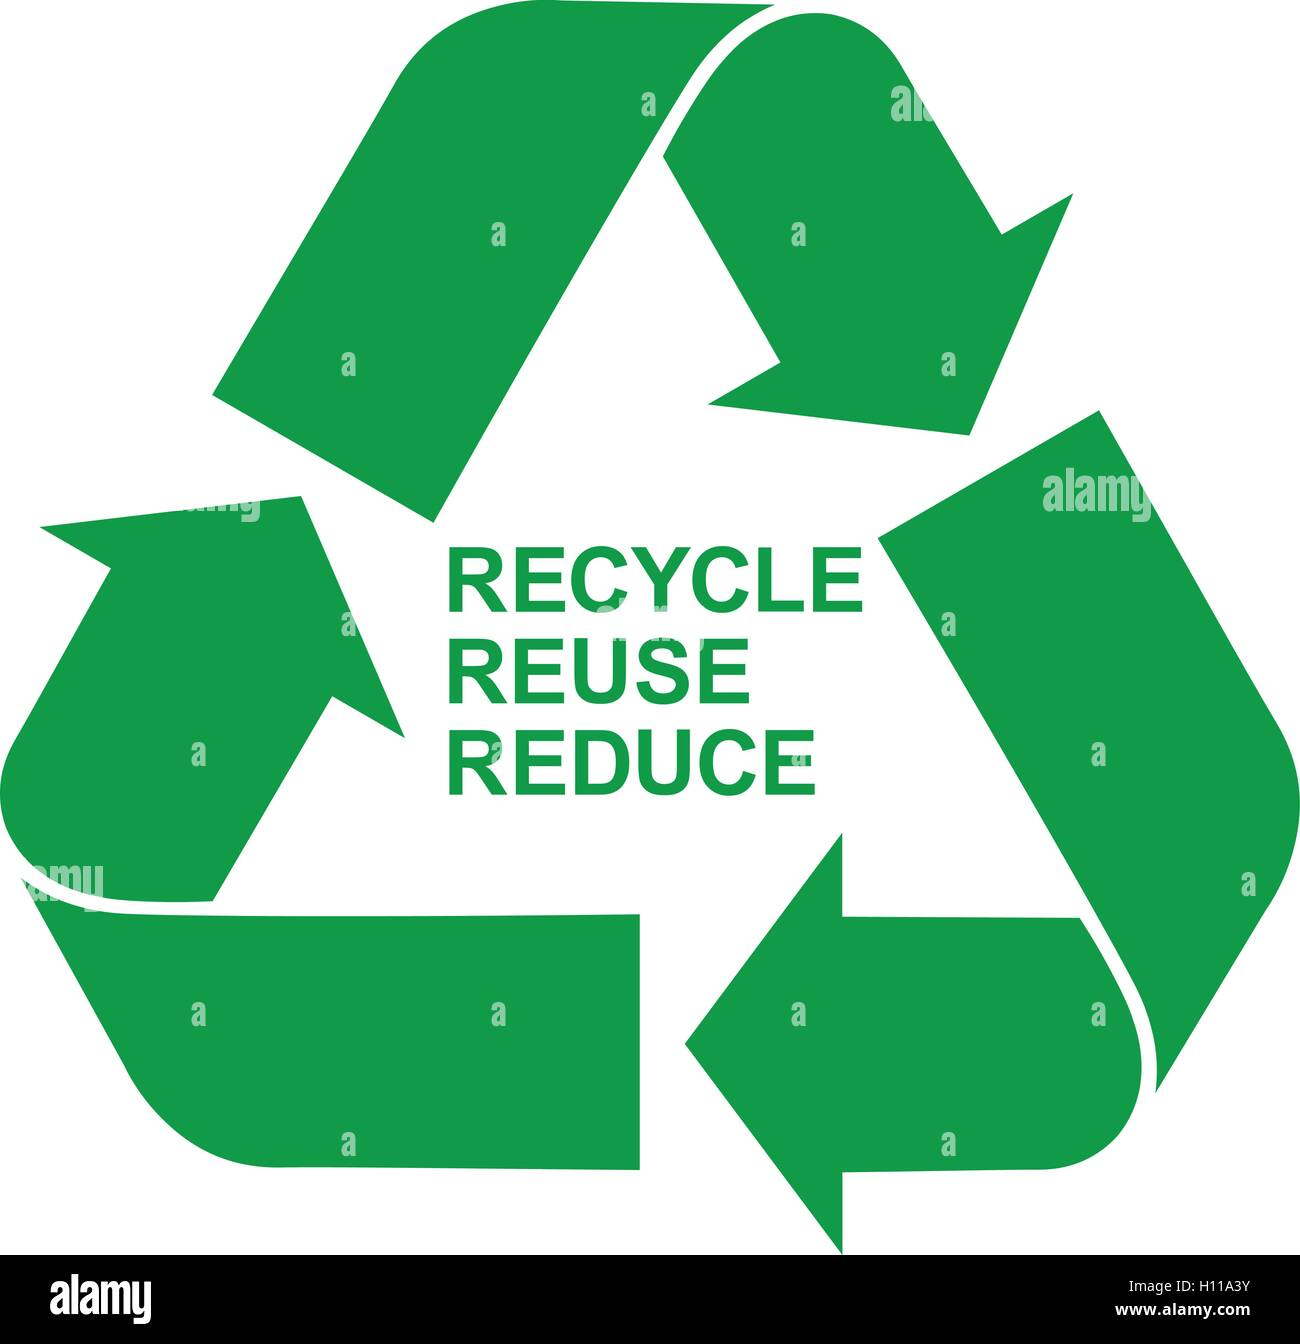 Reduce Reuse Recycle Download Recycling Symbol The Original